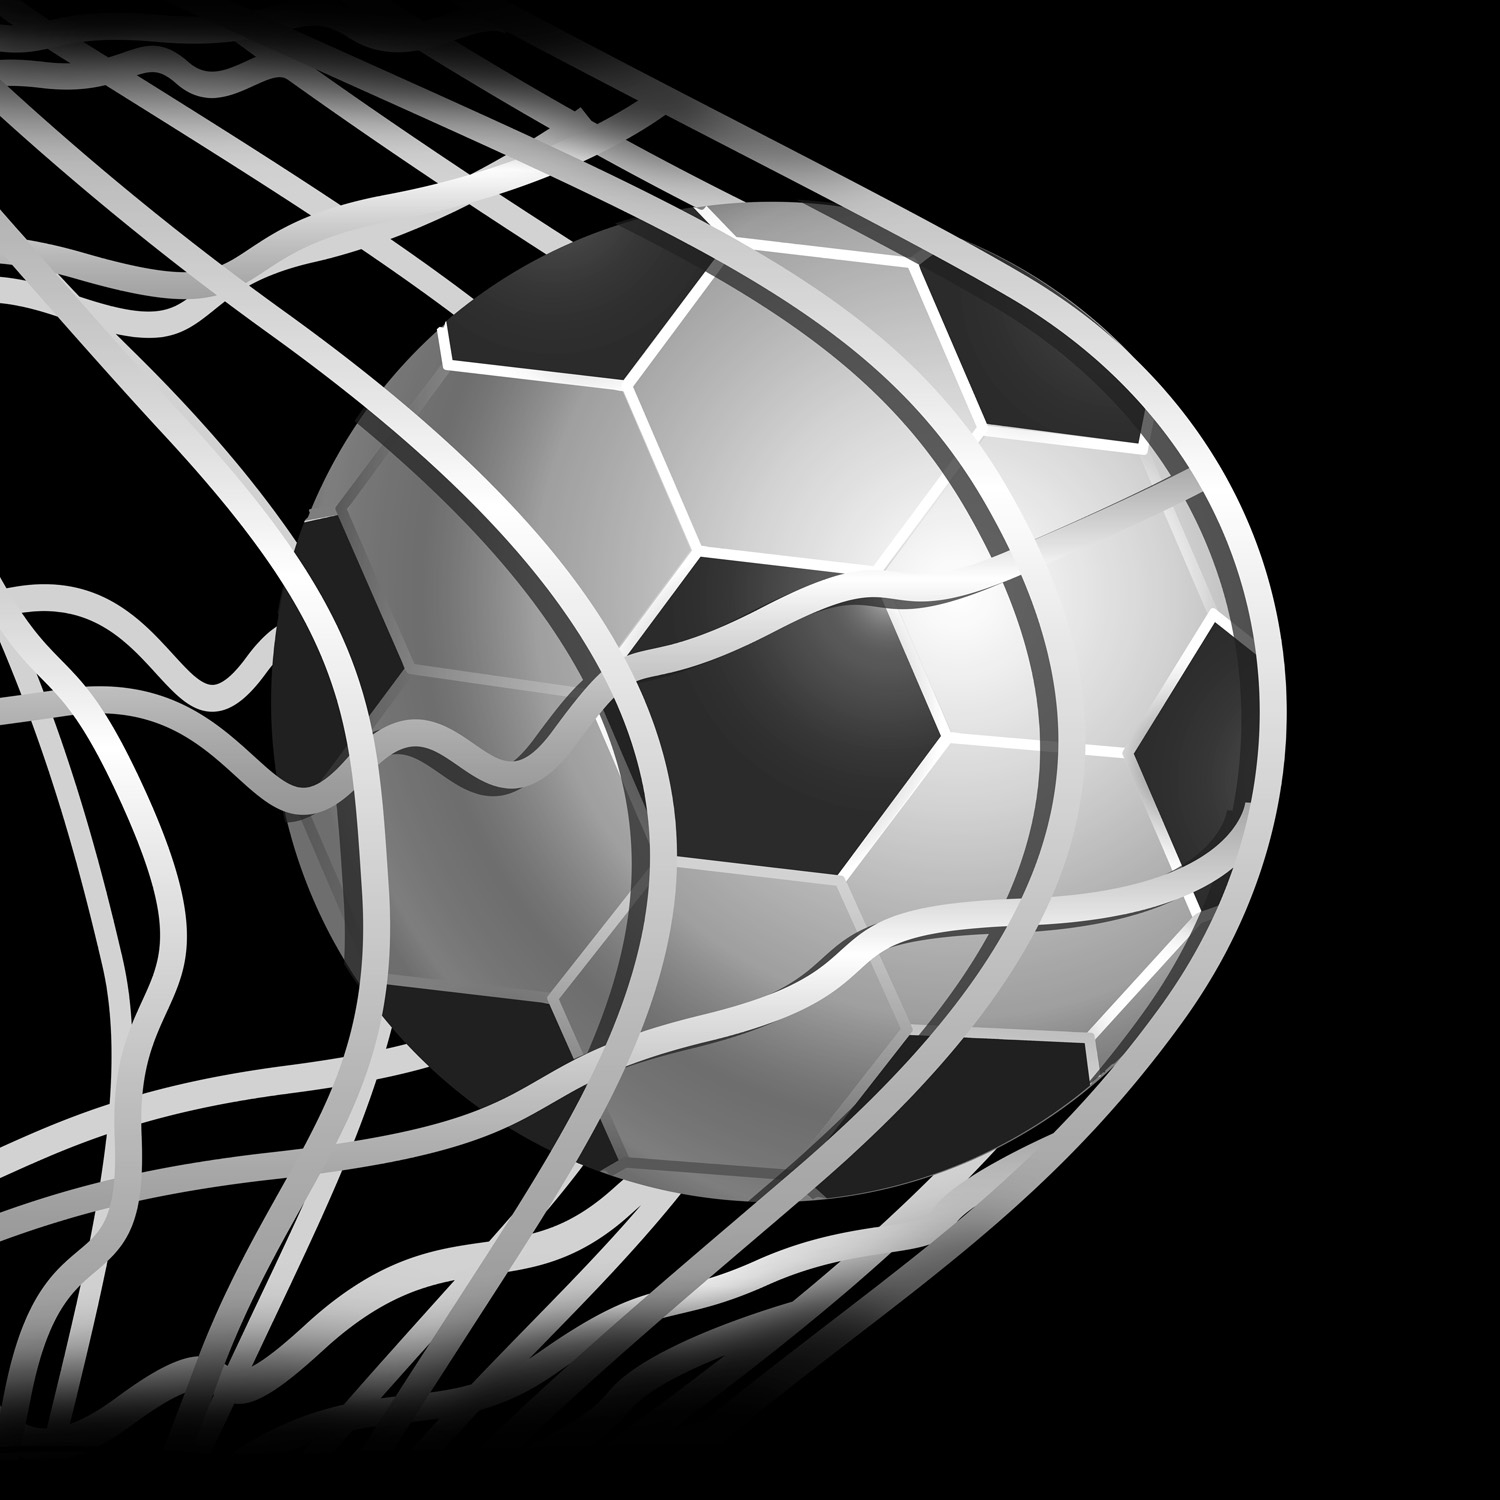 Black and White Soccer Window Curtain Bedroom Accessories 146  Eloquent Innovations